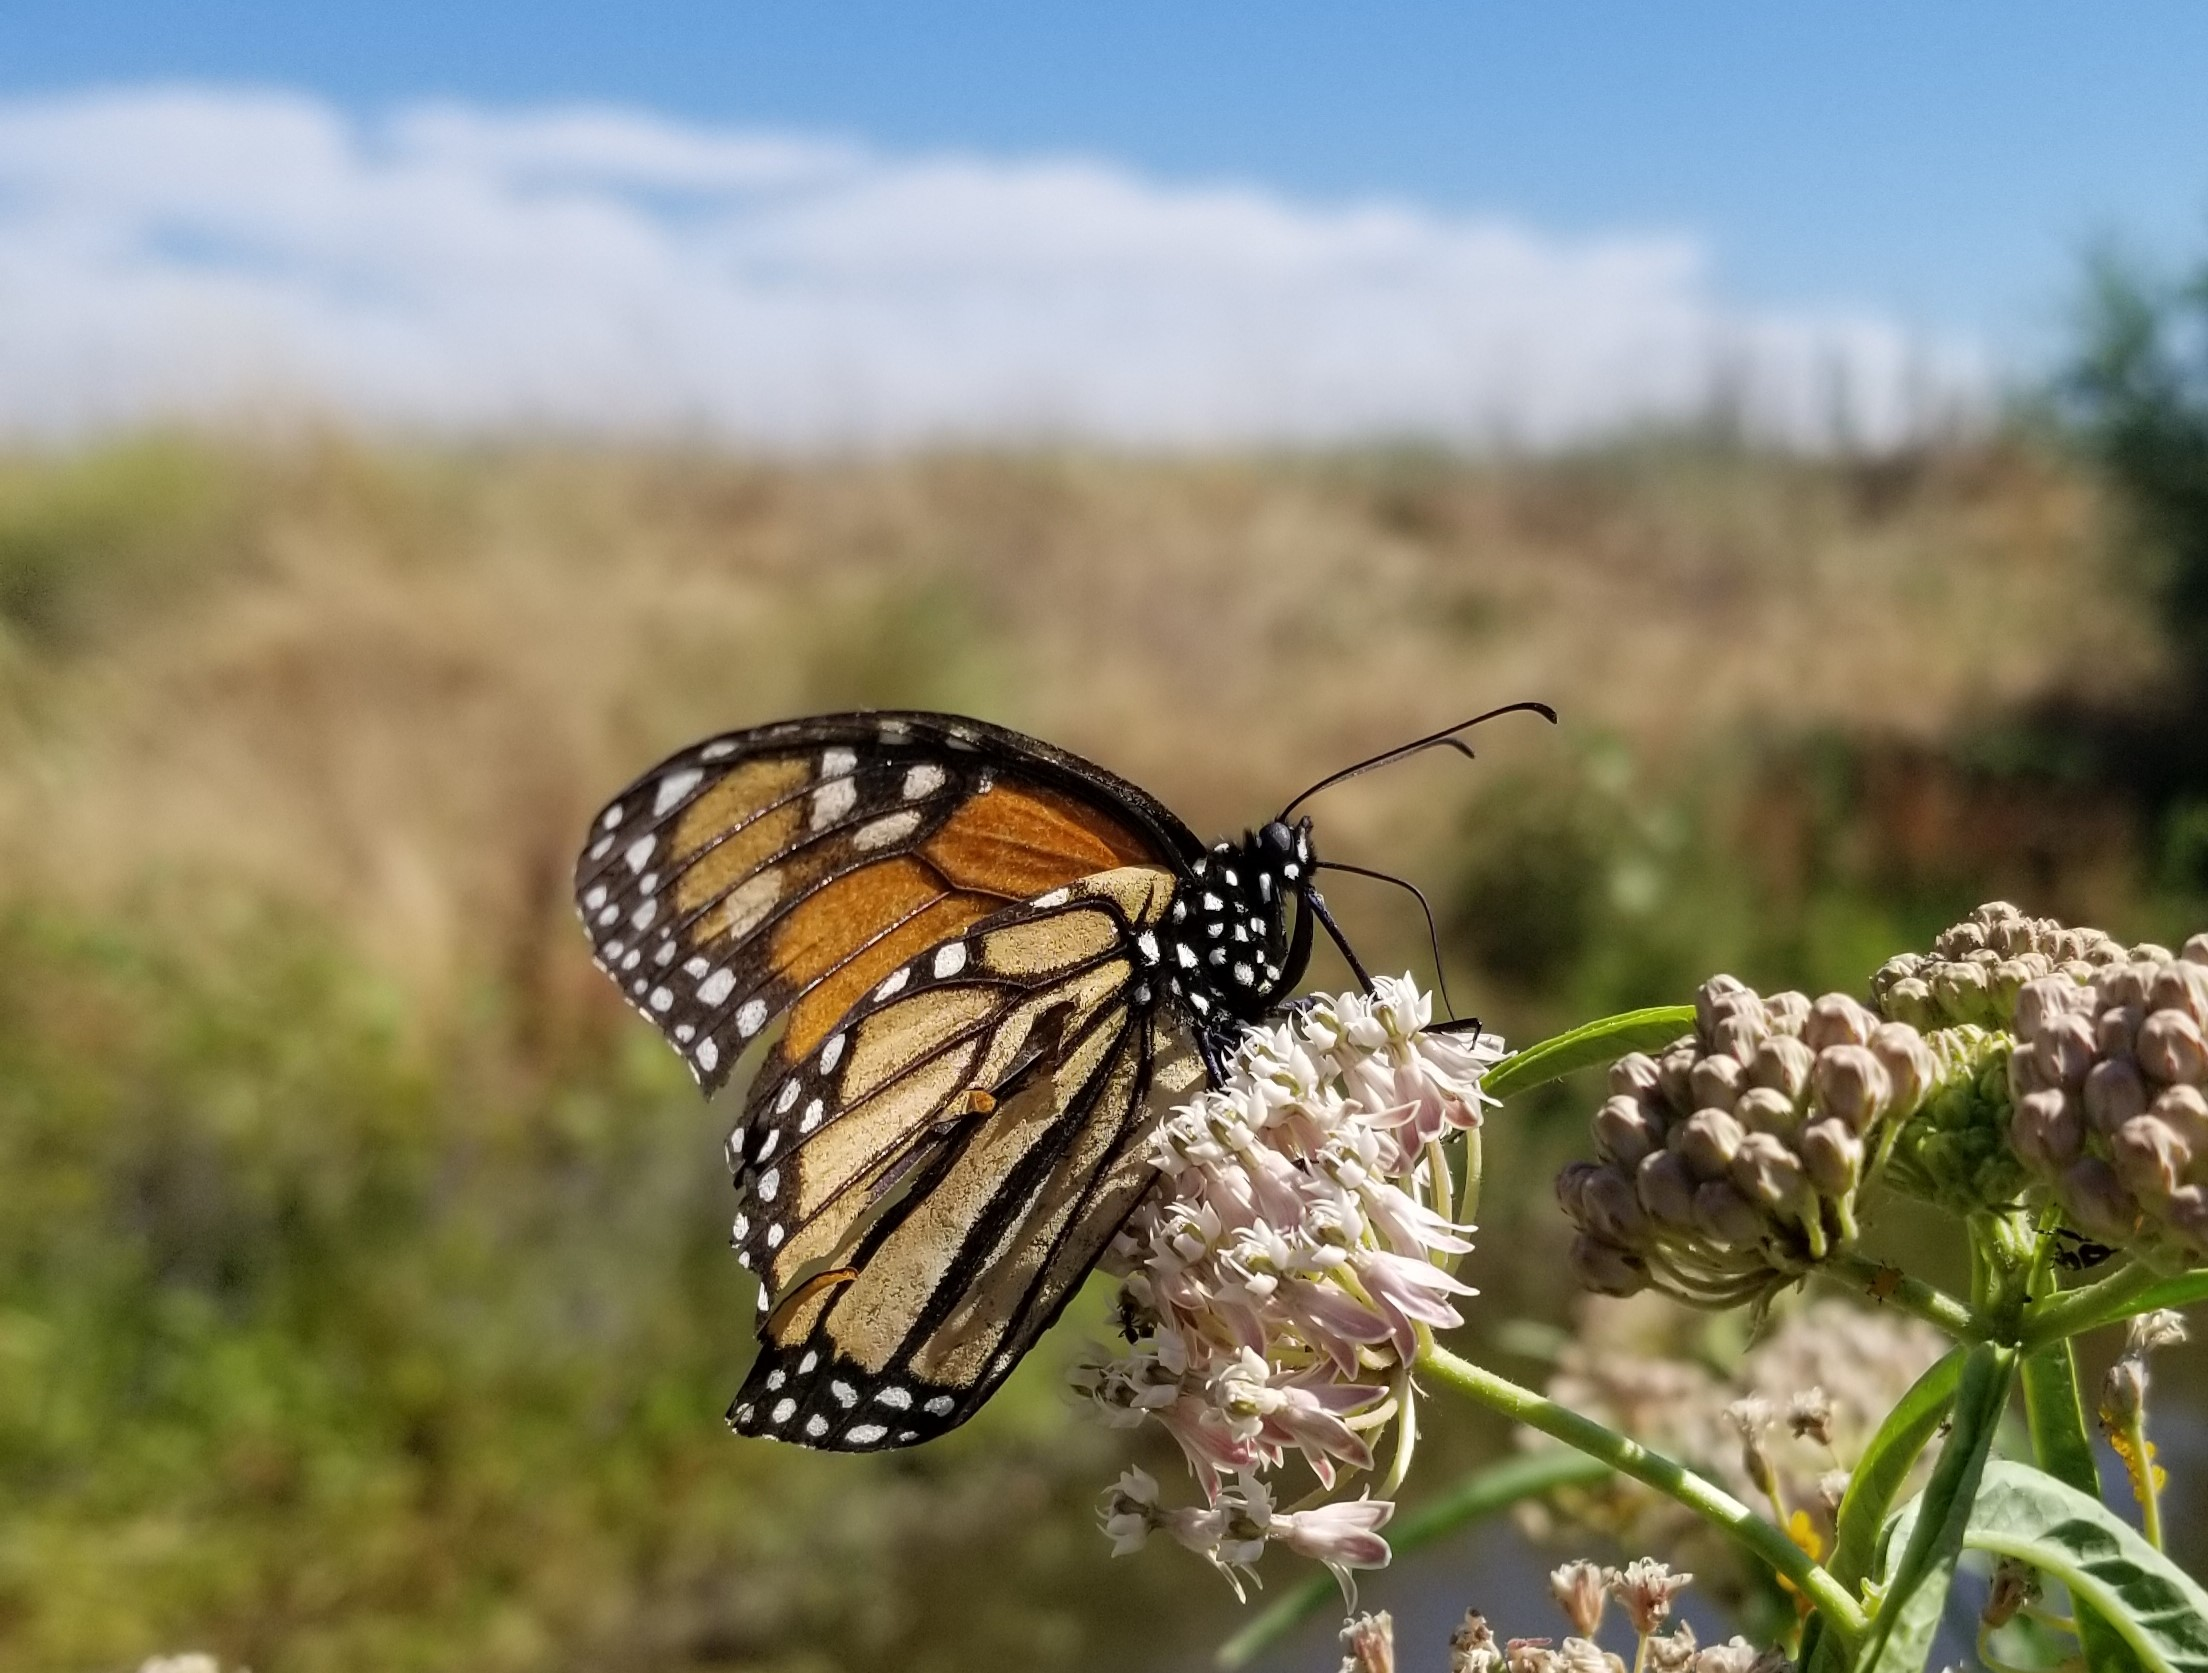 An orange and black monarch butterfly with tattered wings rests on a pink milkweed bloom